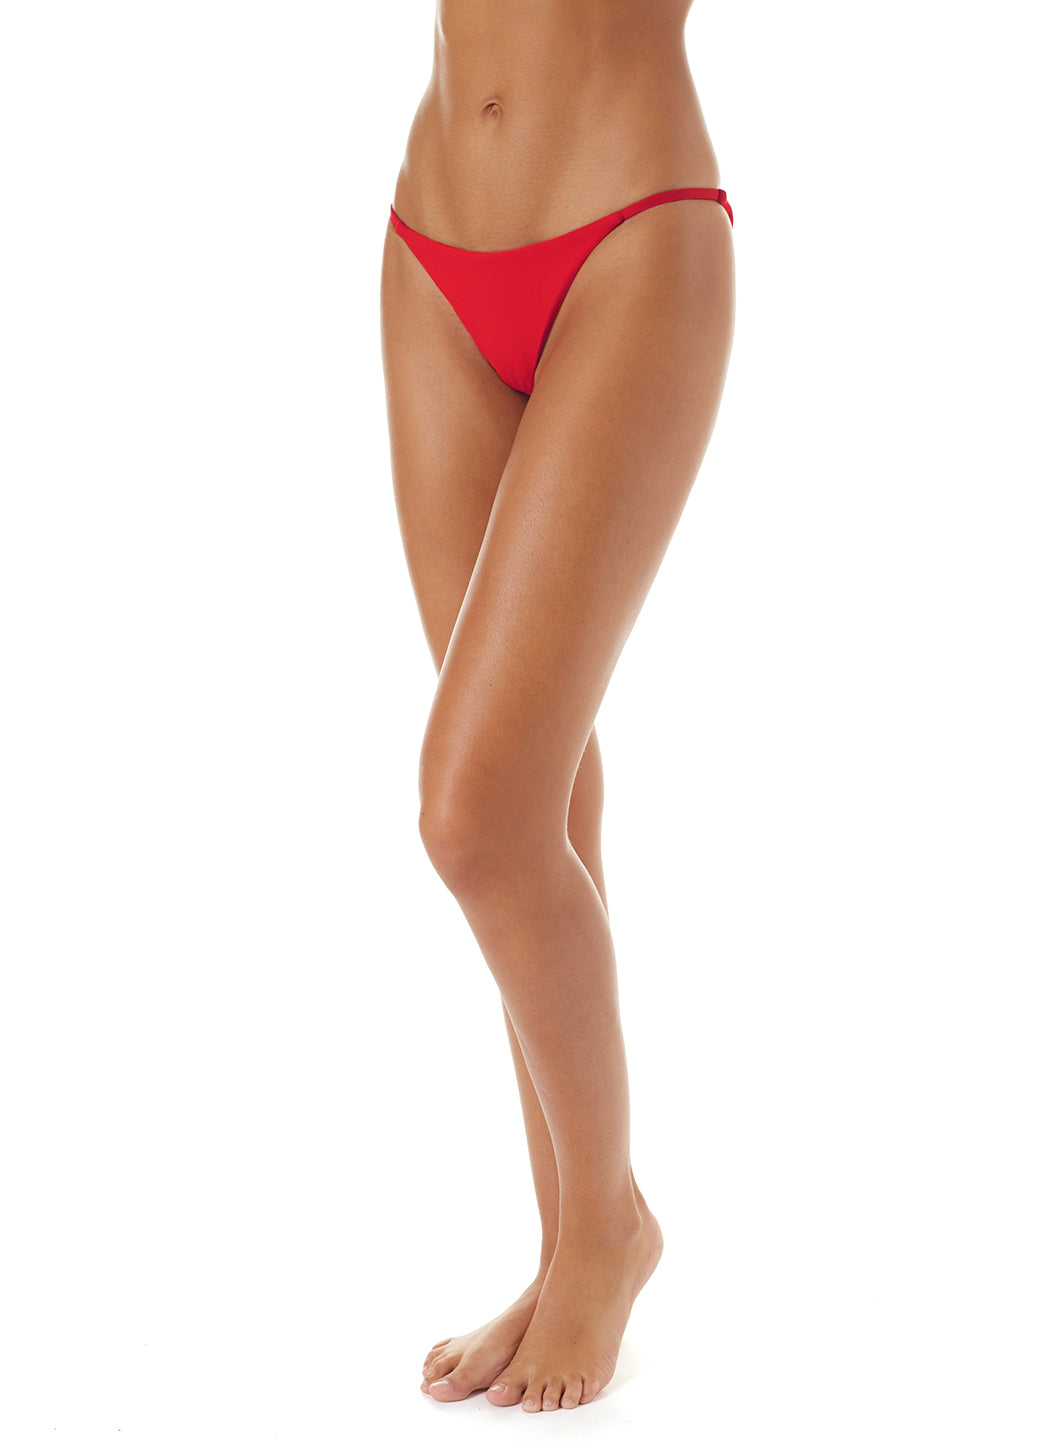 Exclusive St Tropez Red High-Leg Bikini Bottom - Melissa Odabash Bikini Bottoms